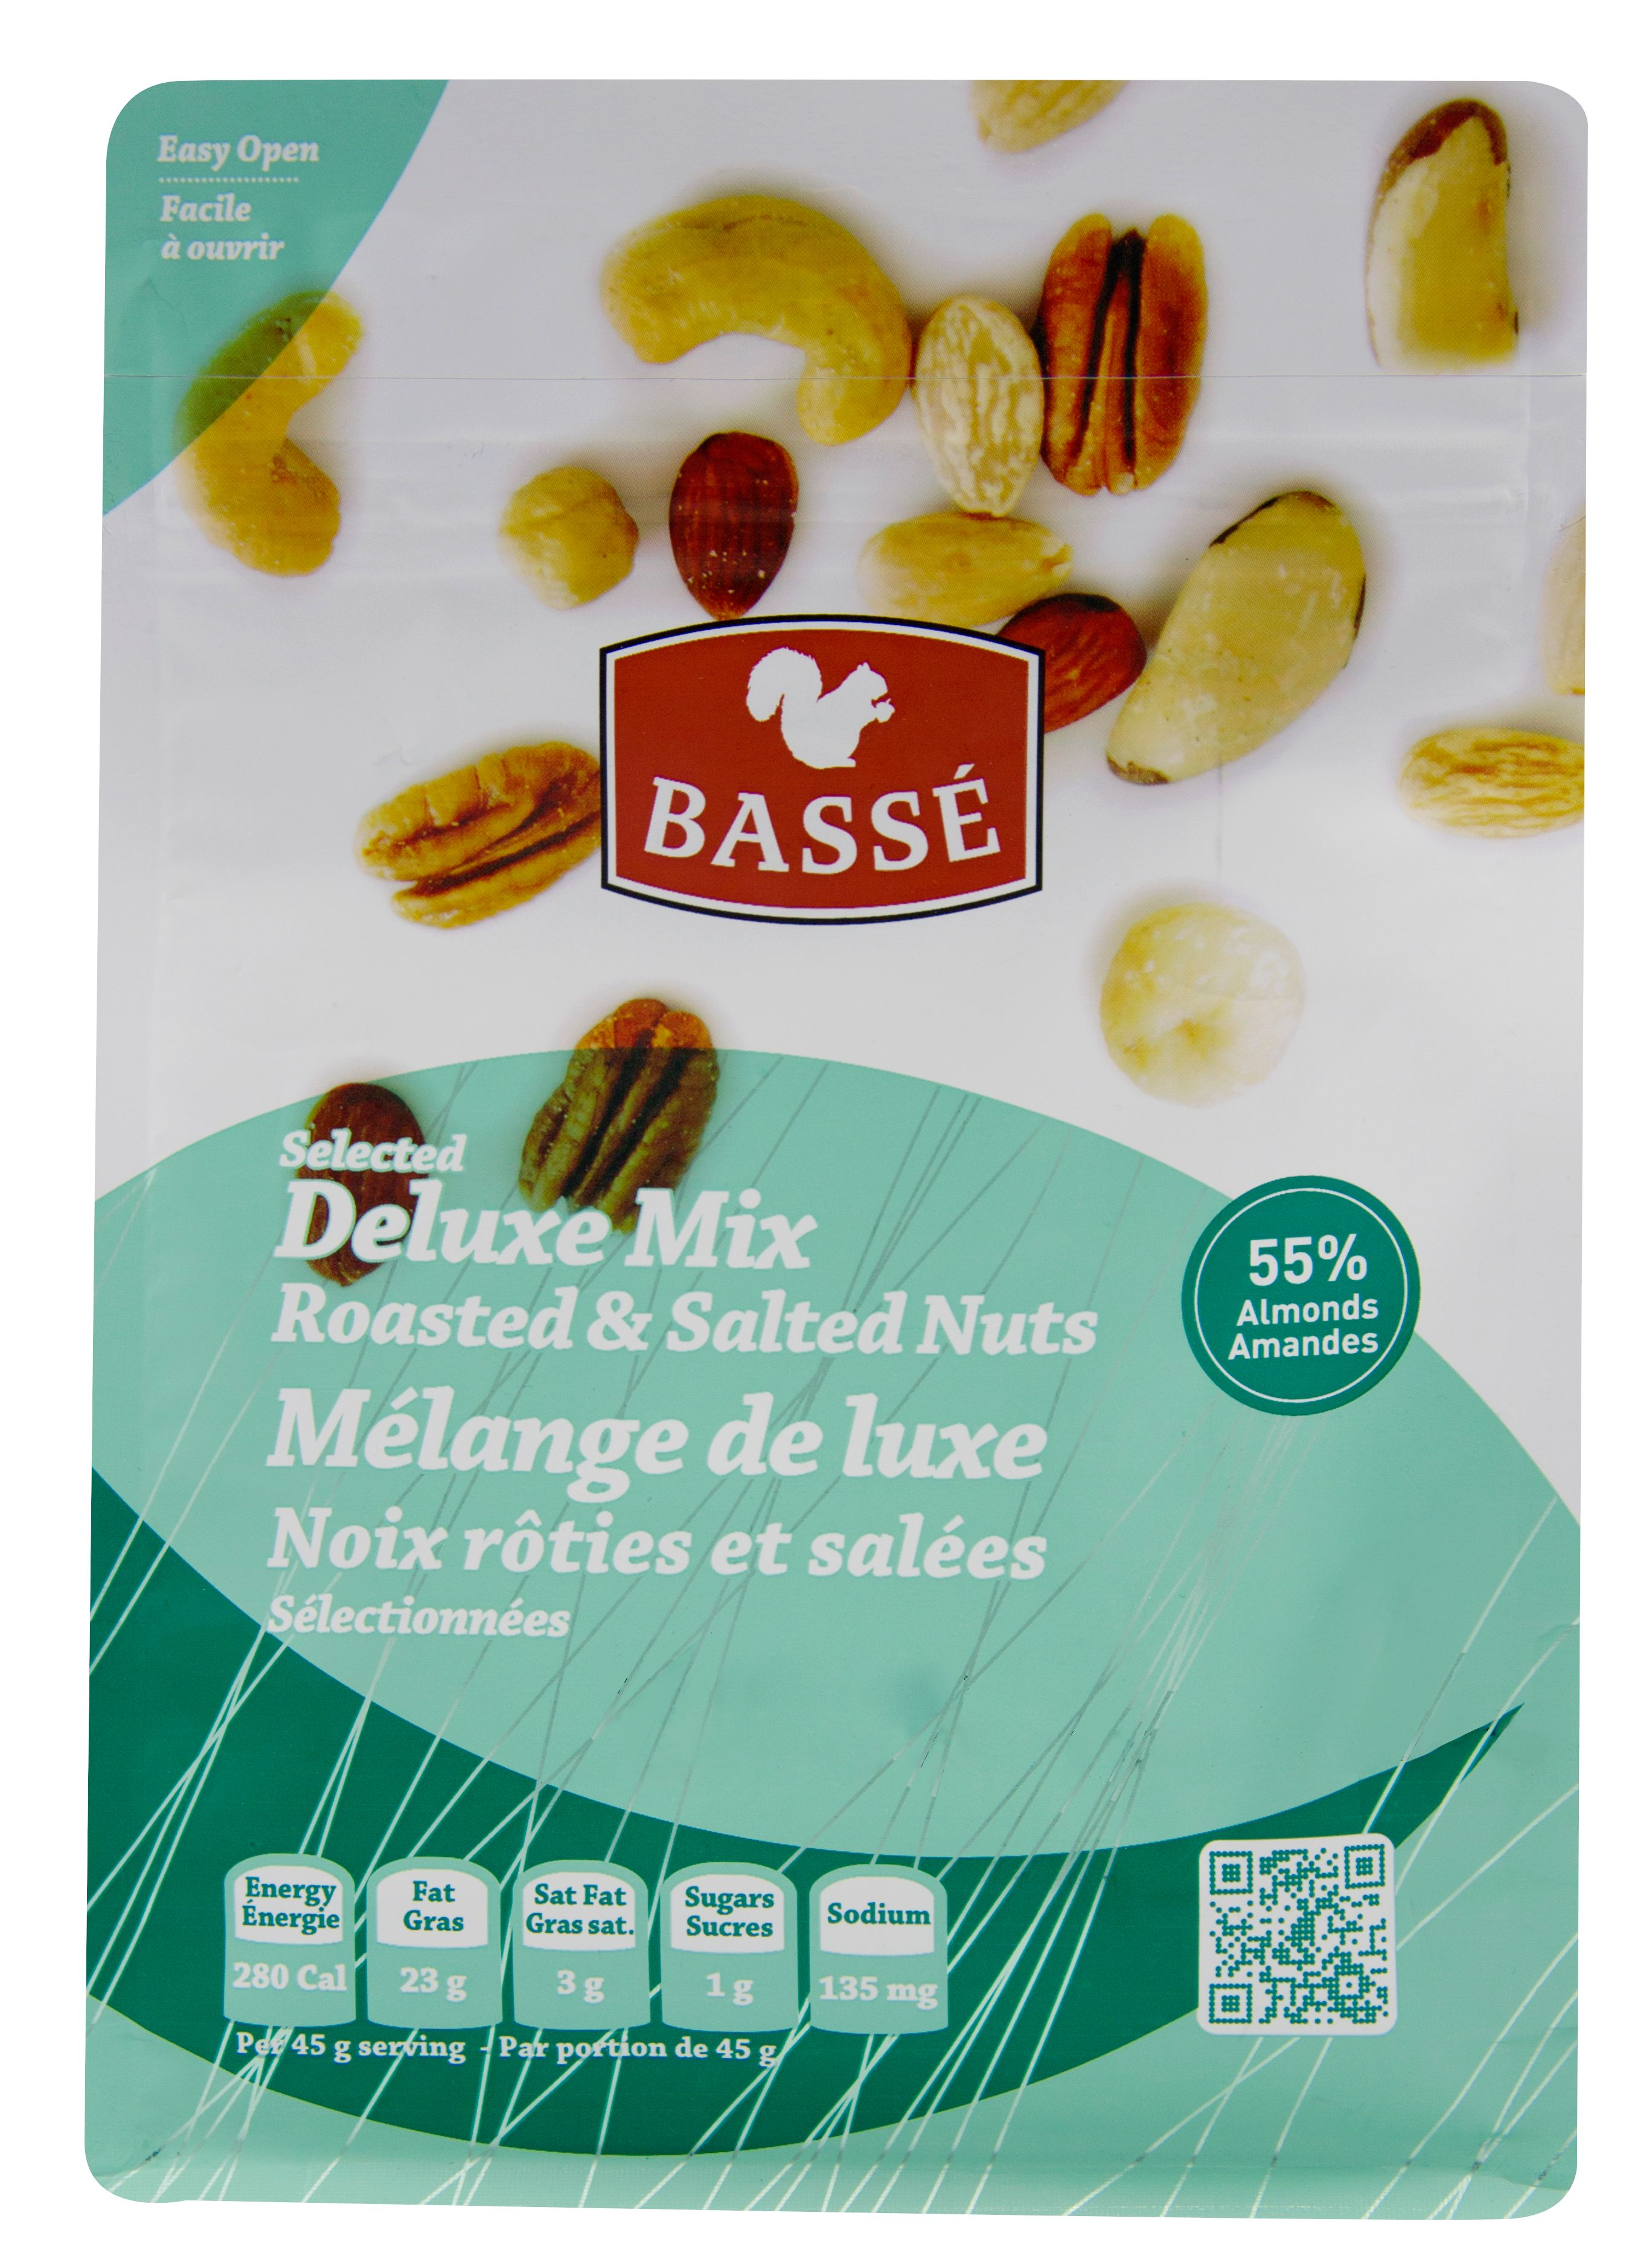 Basse Selected Deluxe Mix Nut & Seed Health Mix (7oz.) Hazelnuts Brazil Nuts Cashews... by Basse Nuts